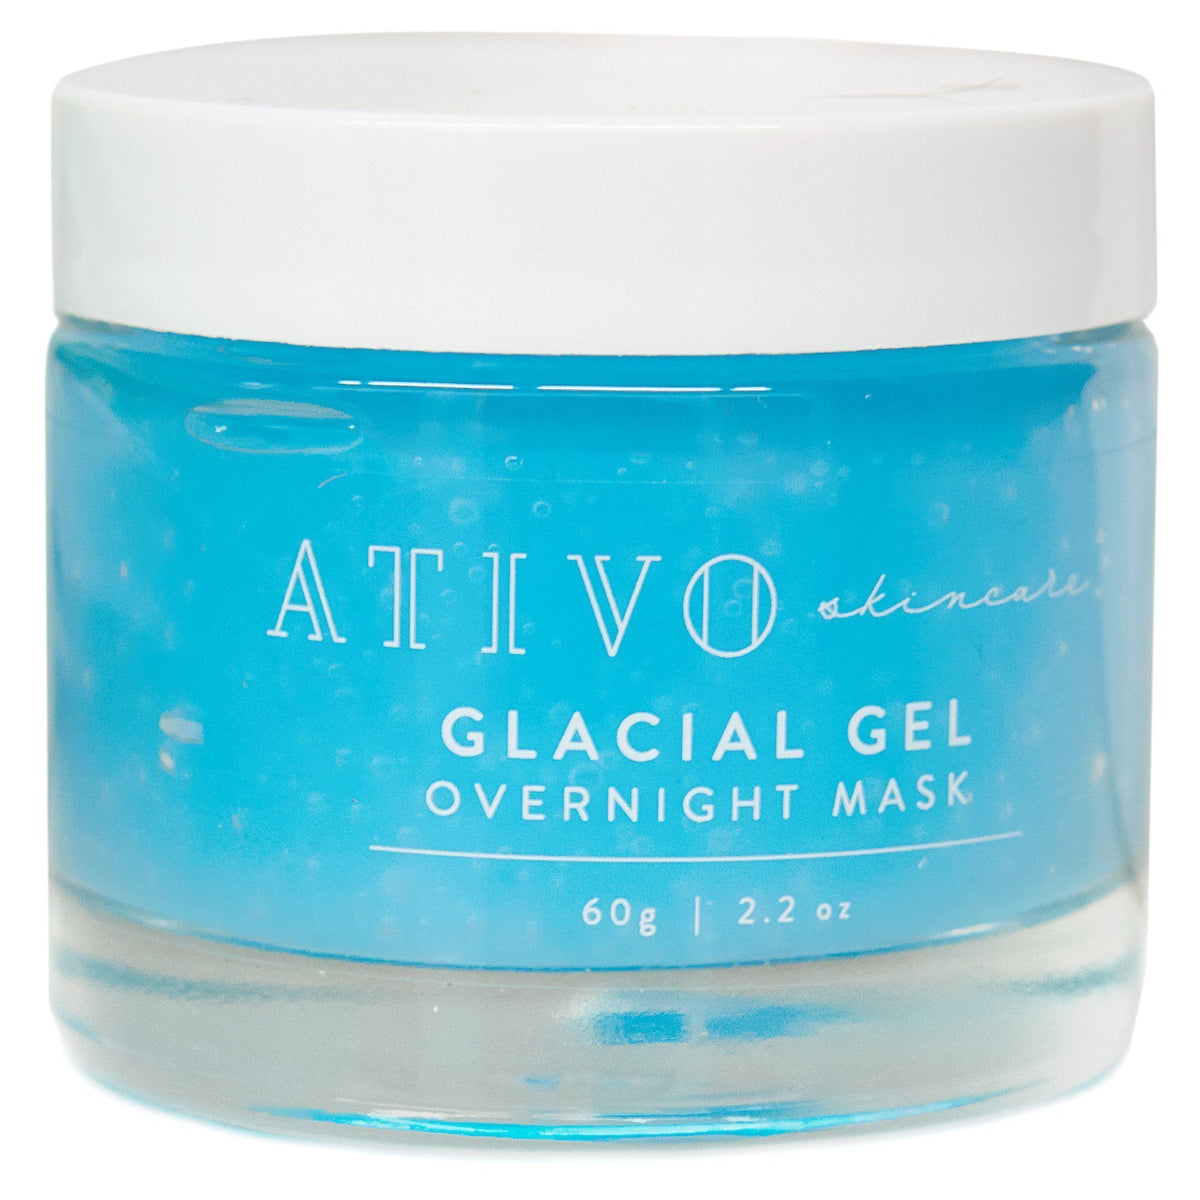 Glacial Gel Overnight Mask.